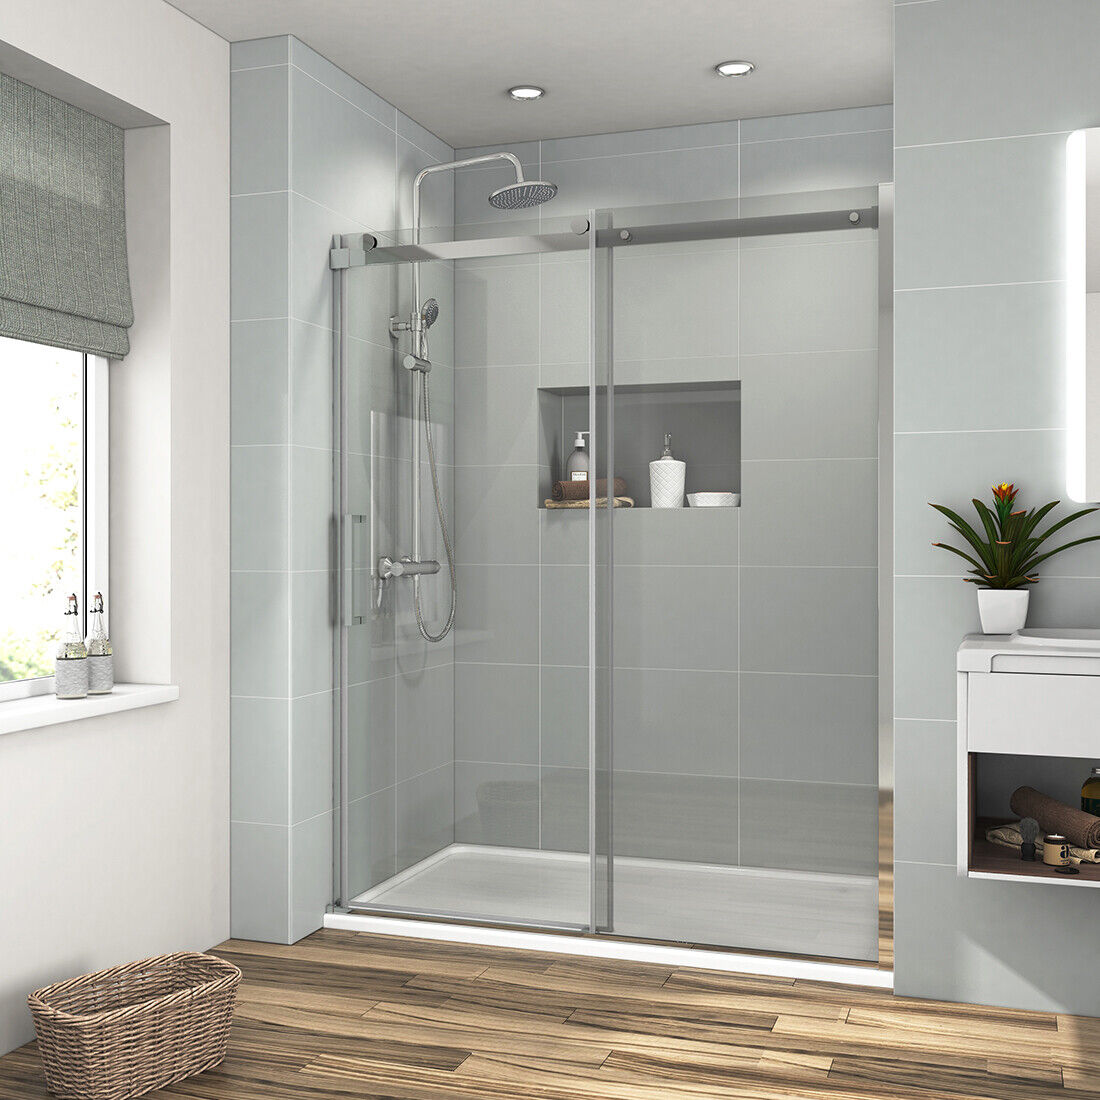 Bath 60 X 72 Frameless Sliding Shower Door Screen 5 16 Glass Bathroom Chrome